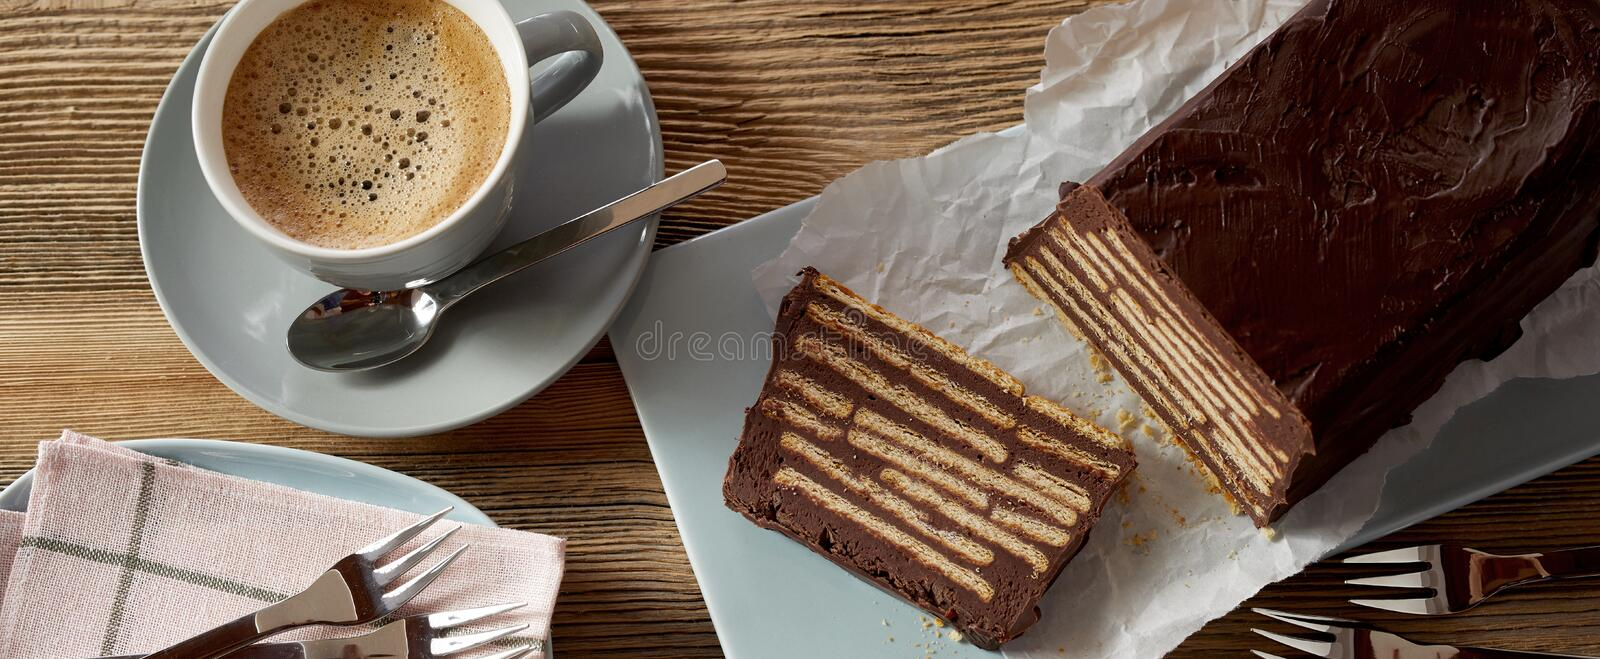 Overhead view of chocolate cake and coffee. Overhead view of chocolate iced biscuit cake with one slice cut and a blue ceramic cup of creamy coffee stock photo